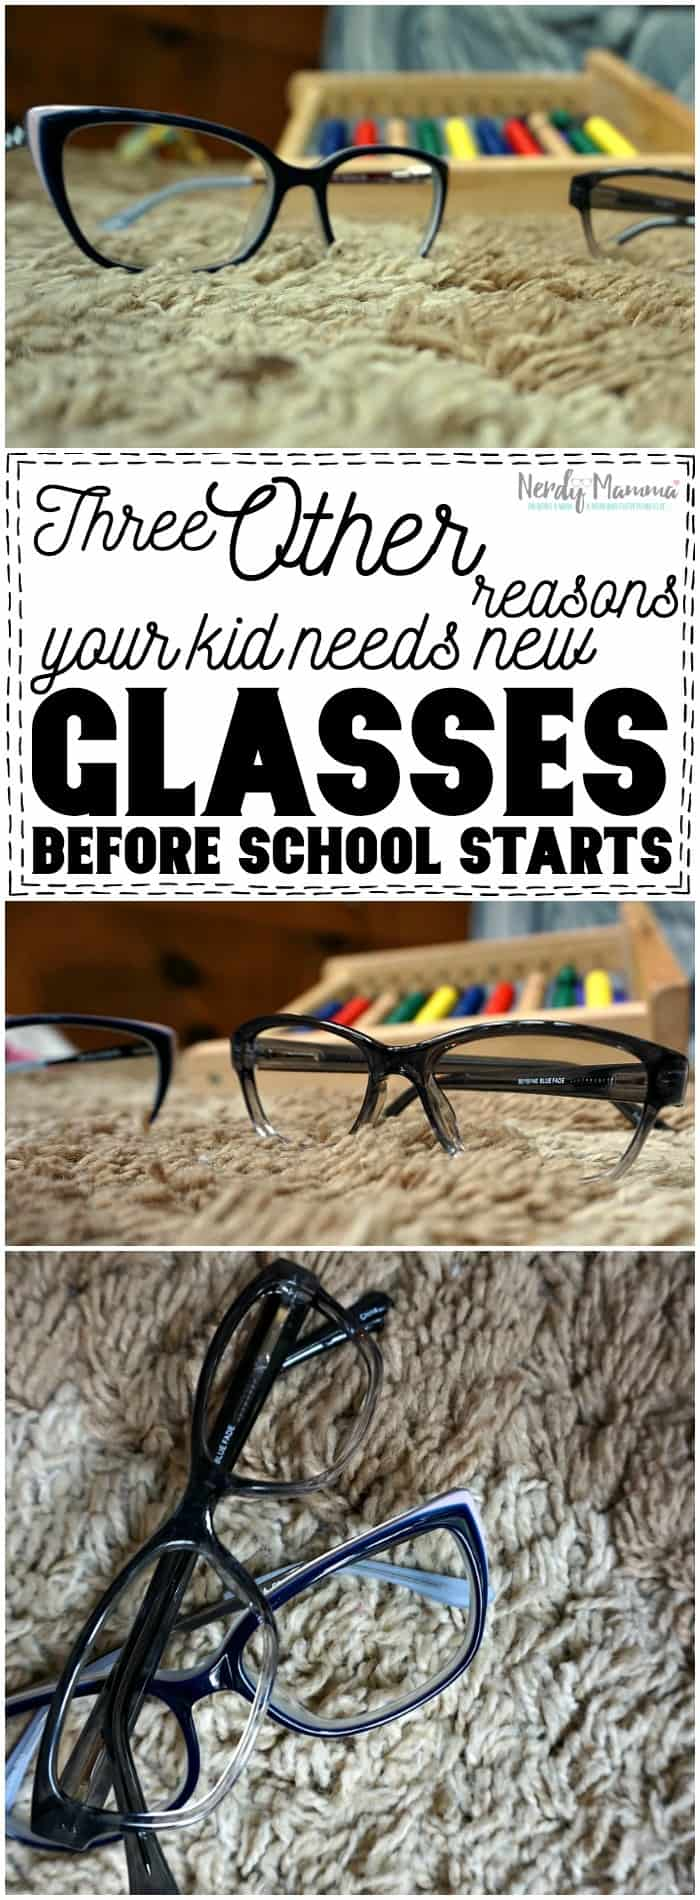 These 3 other reasons your kid needs new glasses before school starts Kind of brilliant--but also, something I should have thought of...smart.